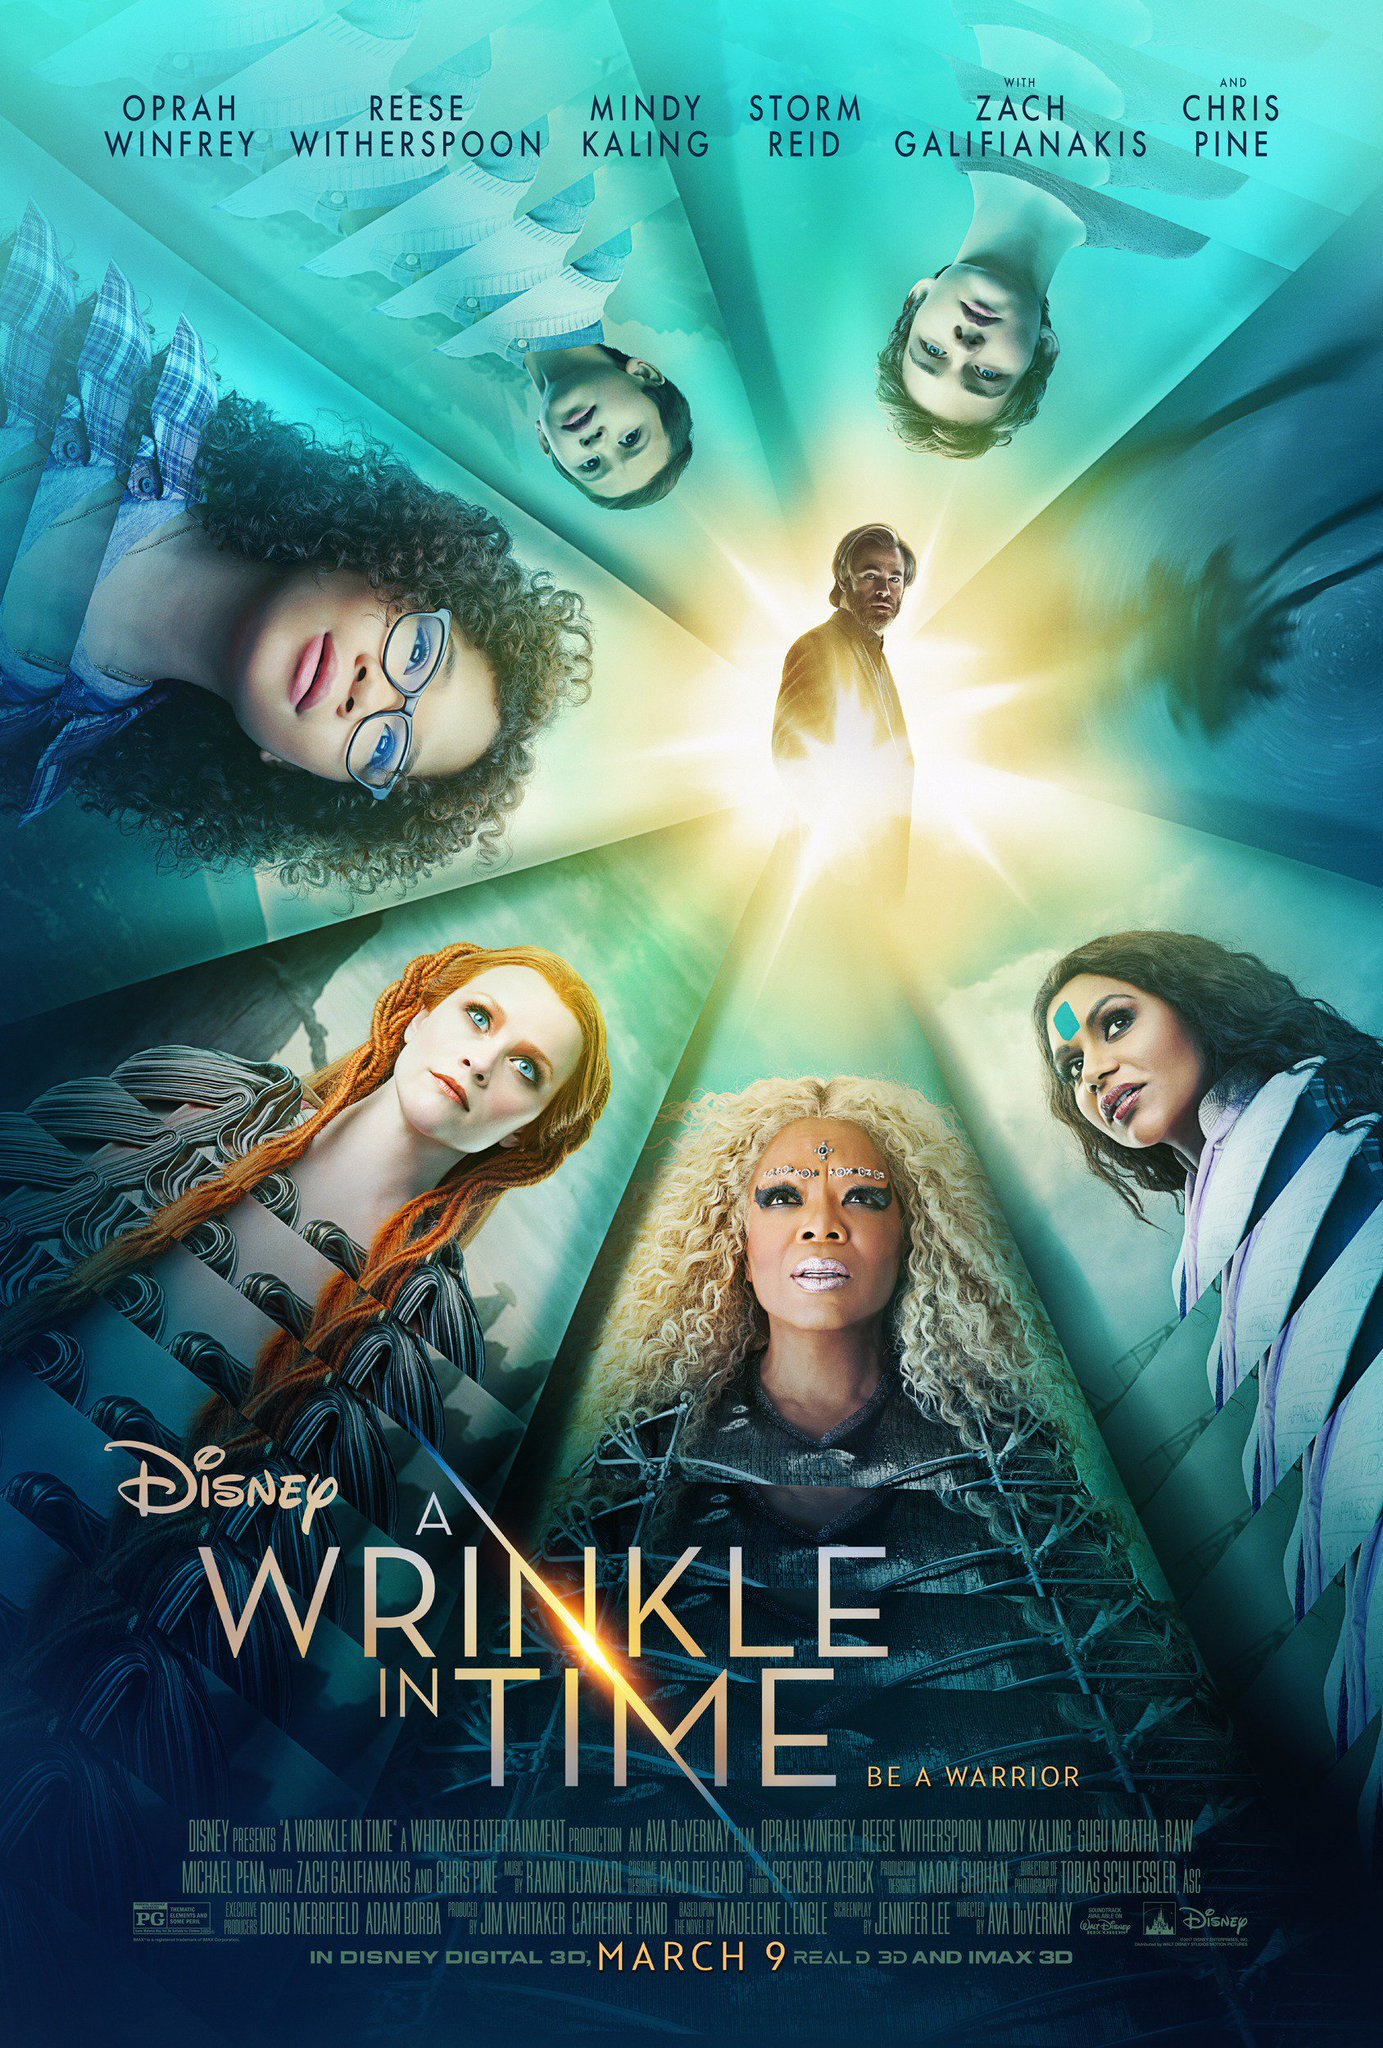 Check out the brand-new poster for A Wrinkle in Time! https://t.co/ZDyyCSTXKU